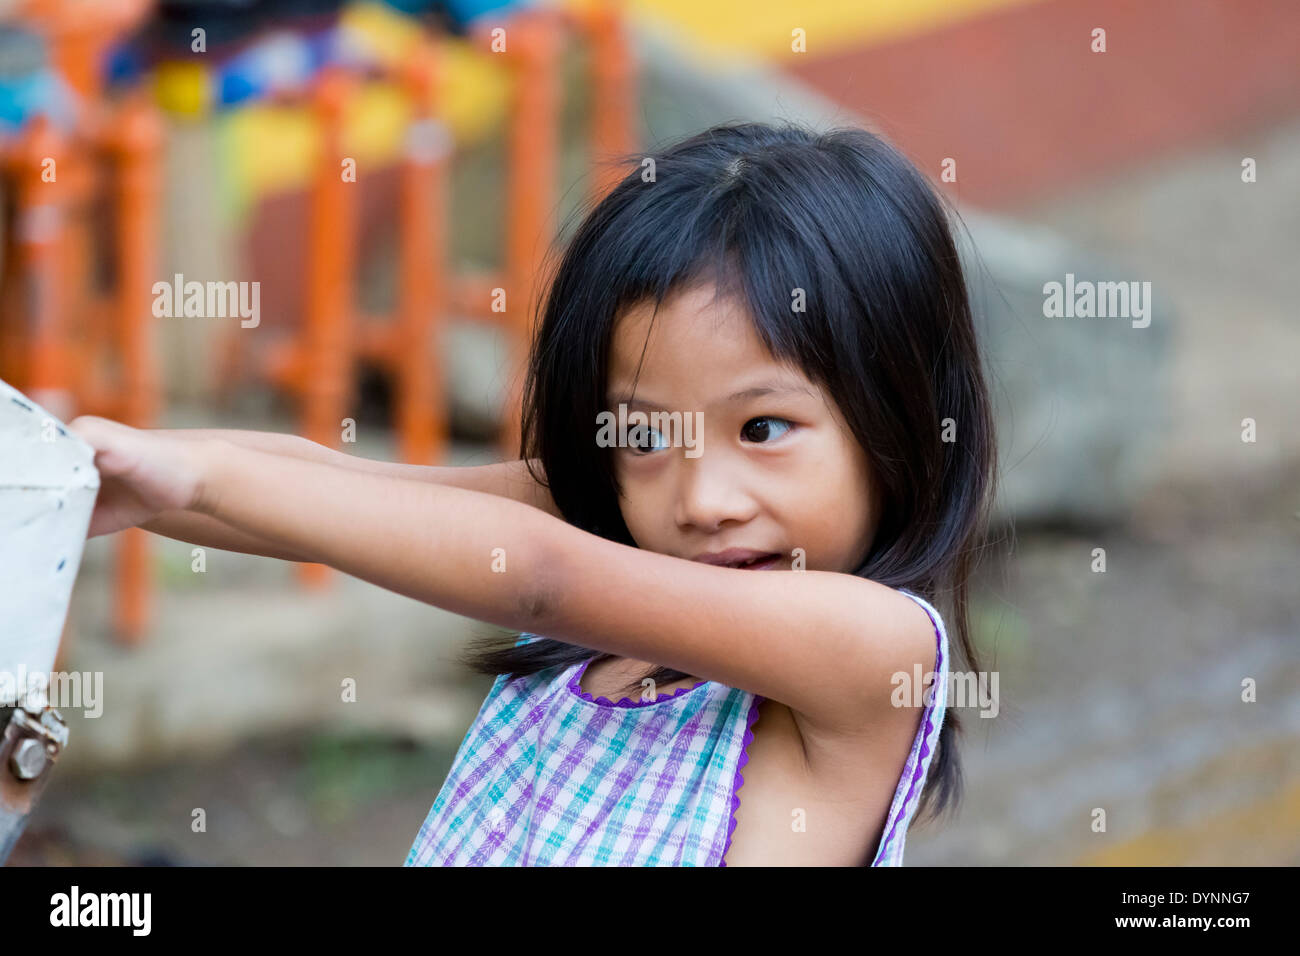 Child girl portrait philippines stock photos child girl portrait portrait of a little girl in puerto princesa palawan philippines stock image thecheapjerseys Image collections